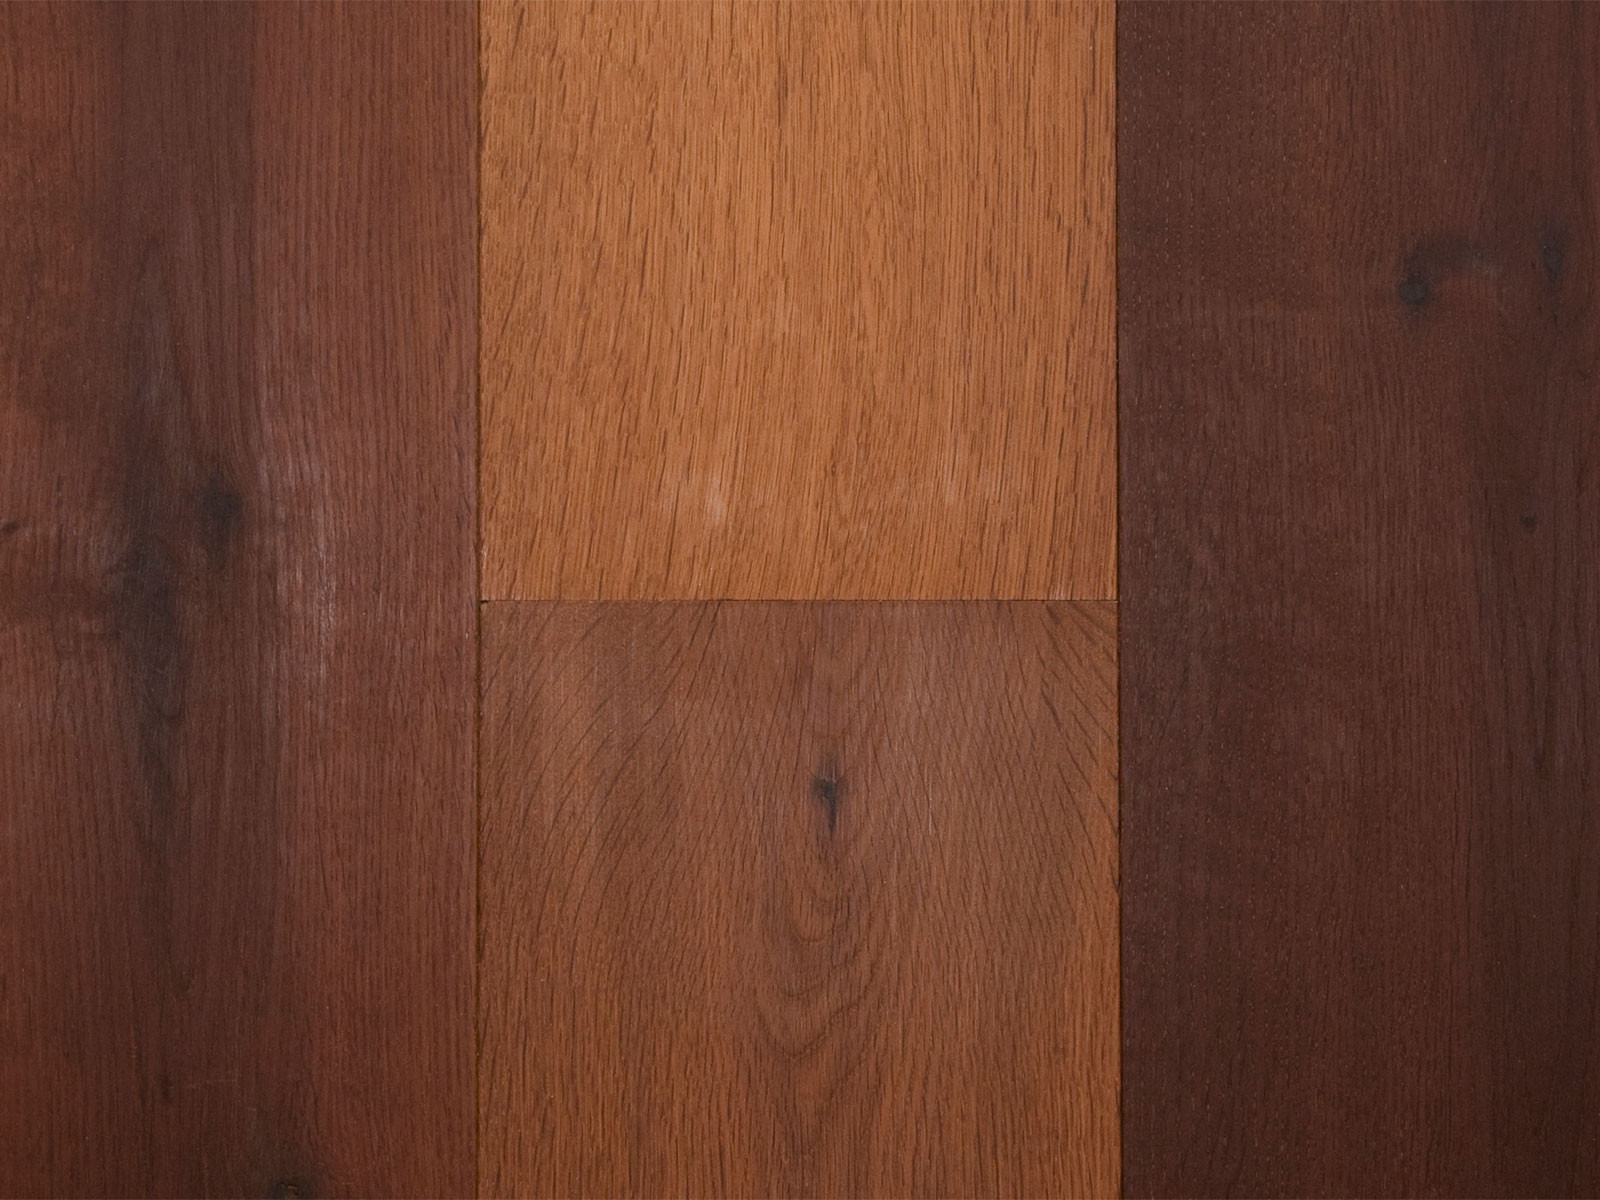 cheap bruce hardwood flooring of american relics collection hfcentre with regard to savoy european oak